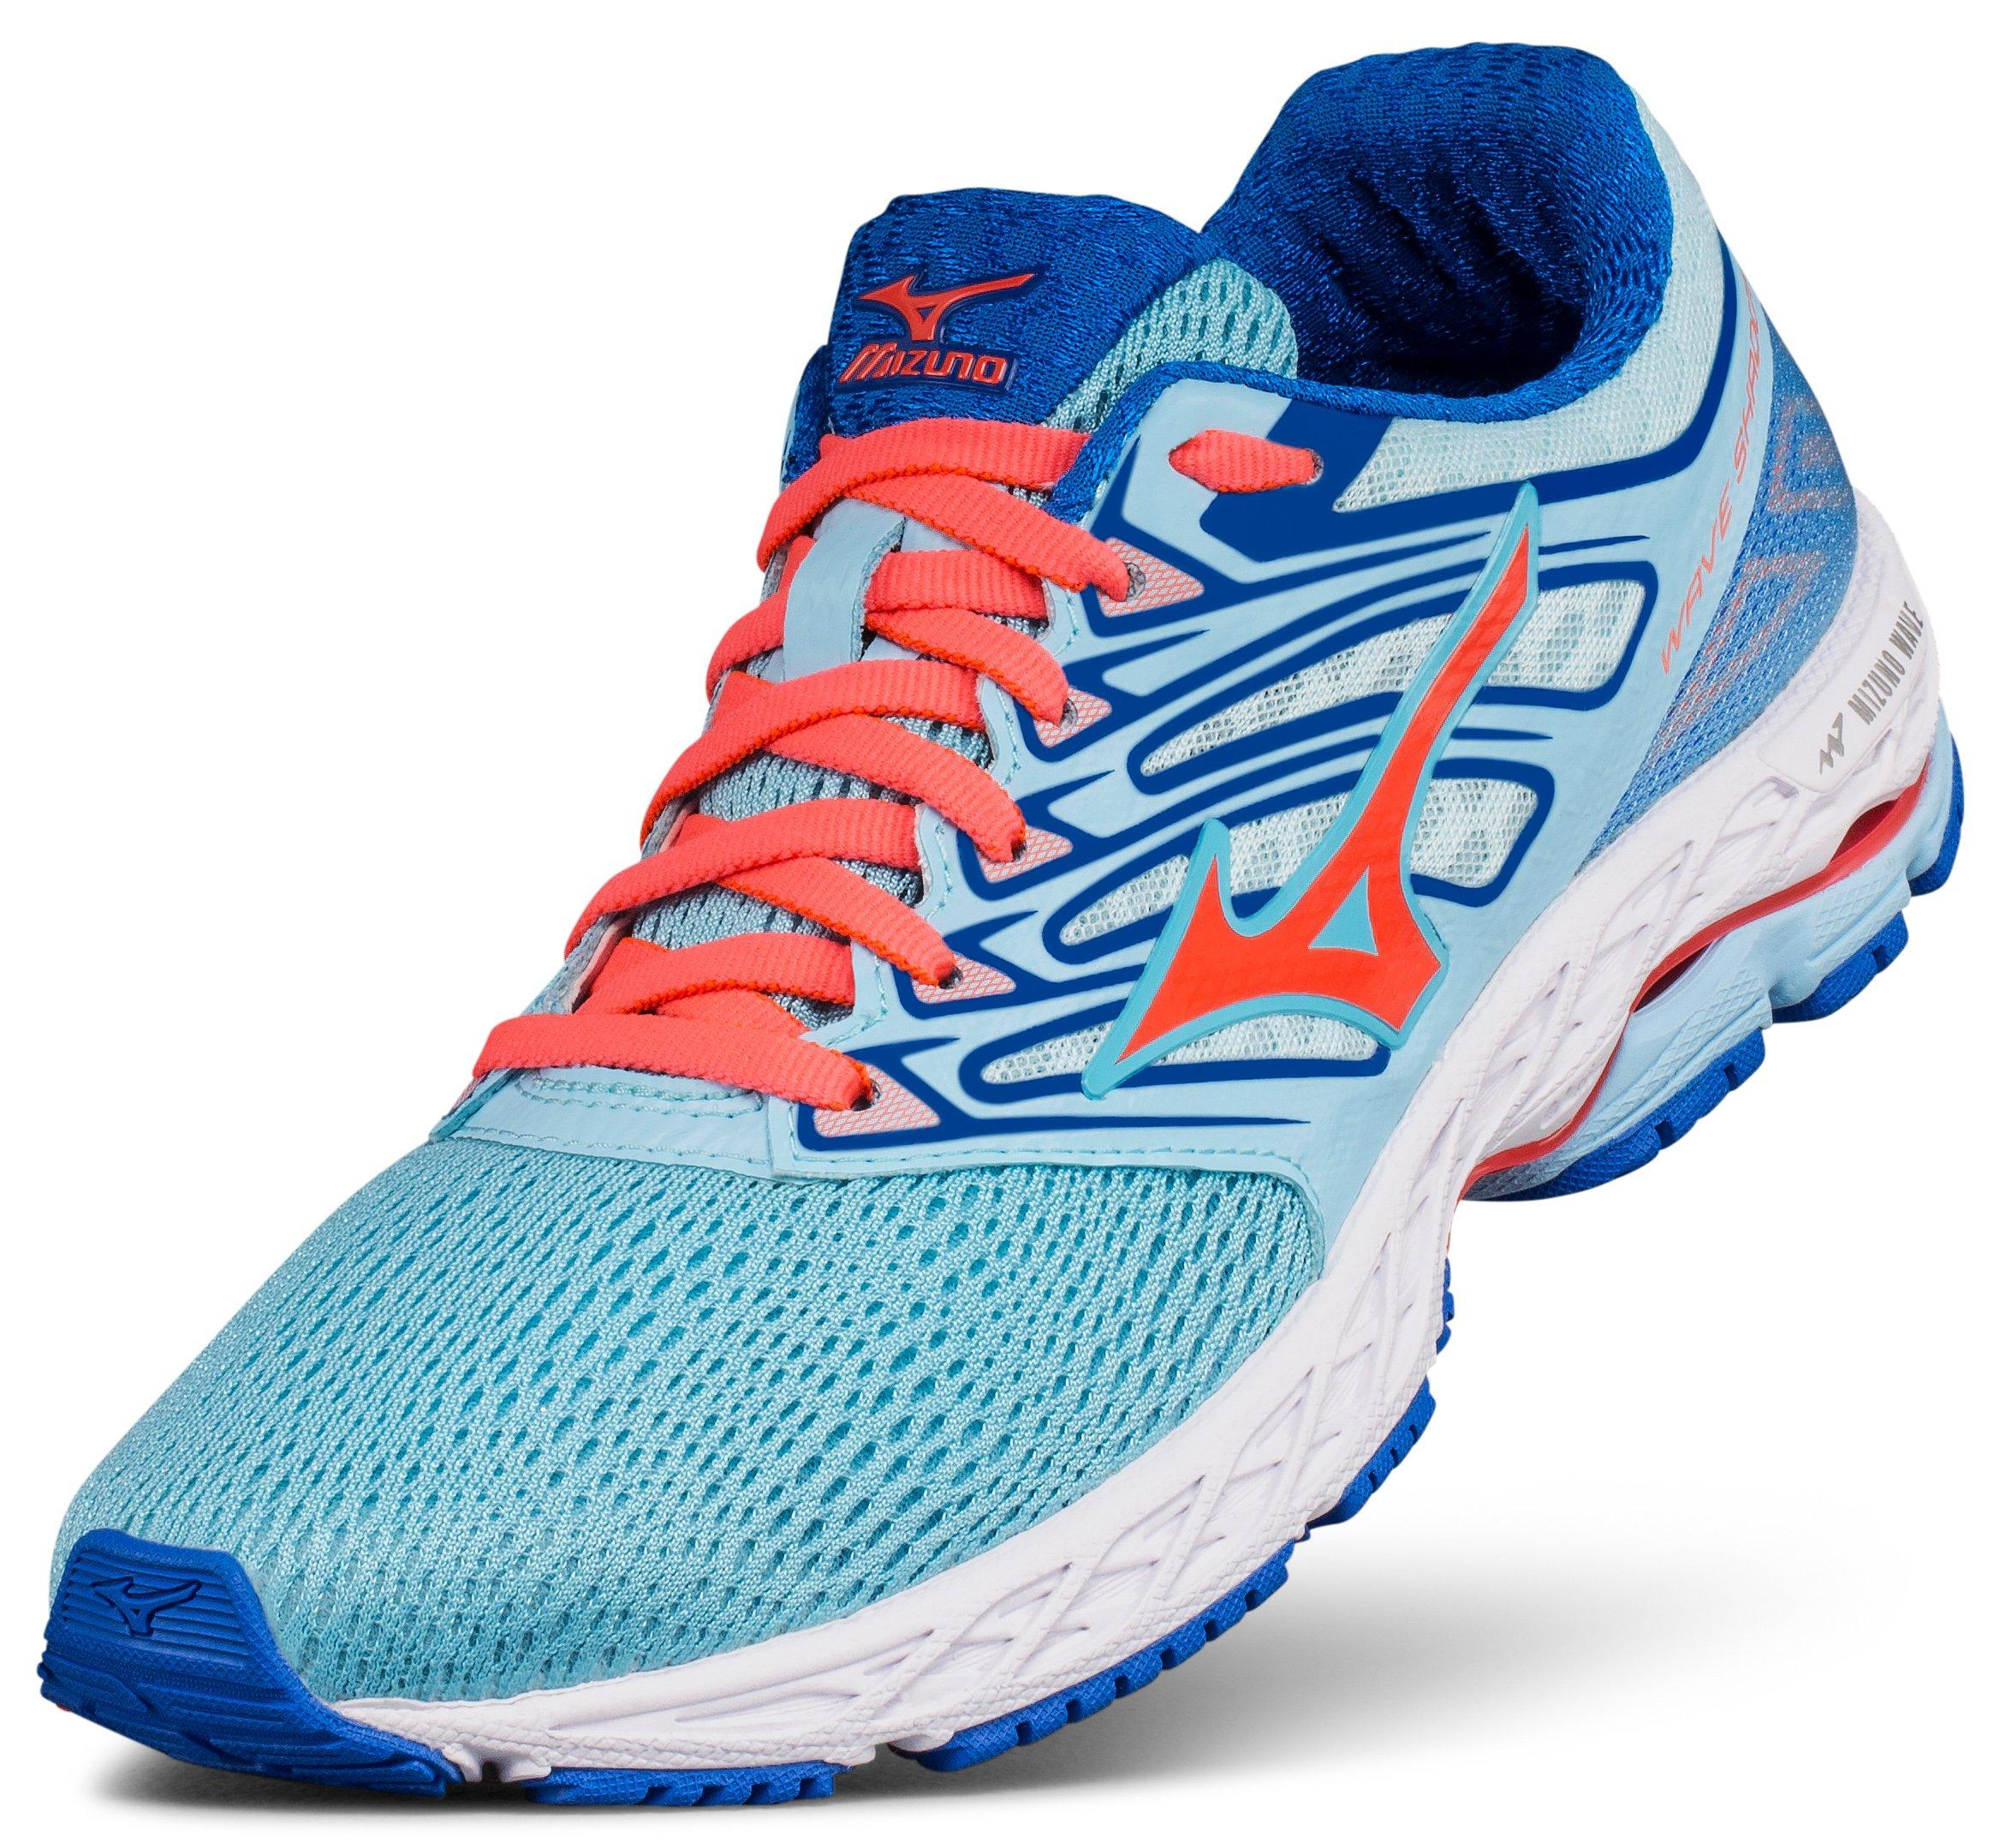 Wave Shadow Womens - Mizuno Economical, stylish, and eye-catching shoes